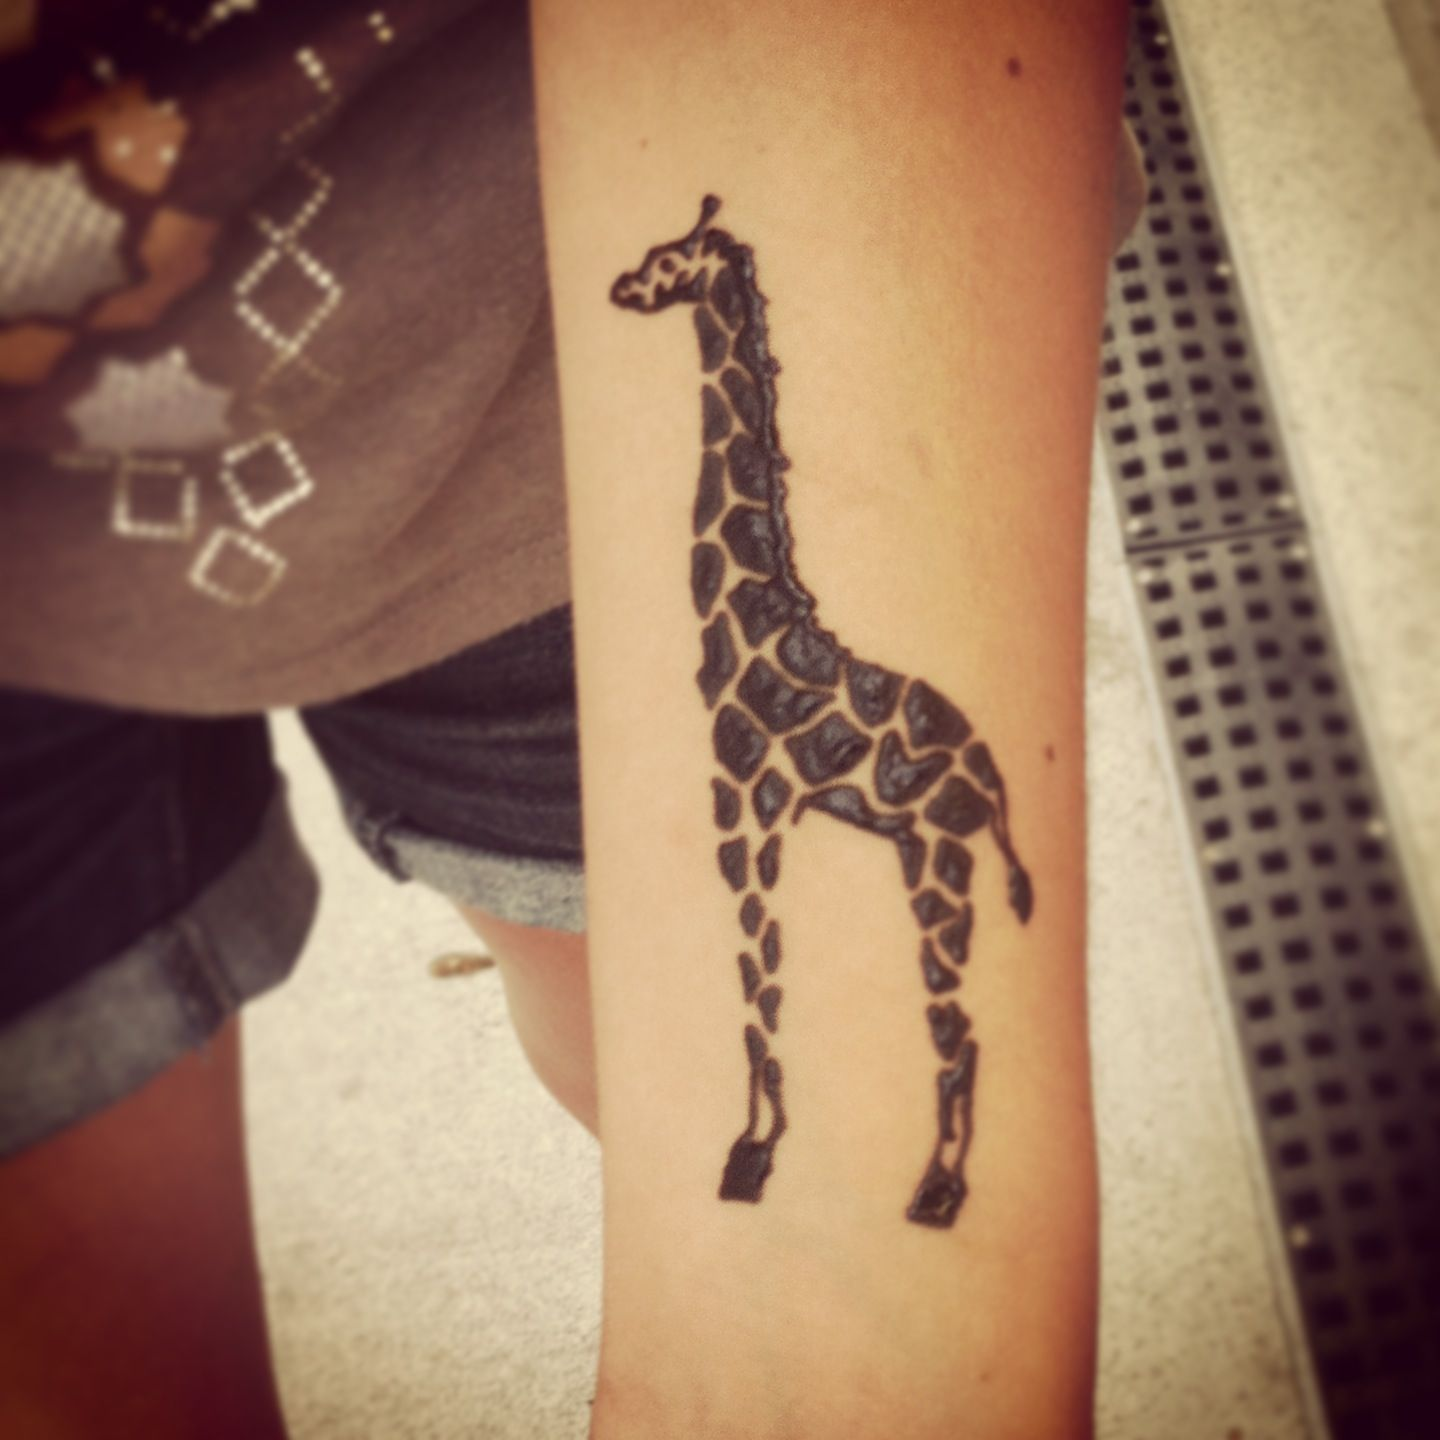 Easy Henna Tattoo Forearm: My Giraffe Henna Tattoo On Wrist...I Love It! #tattoo